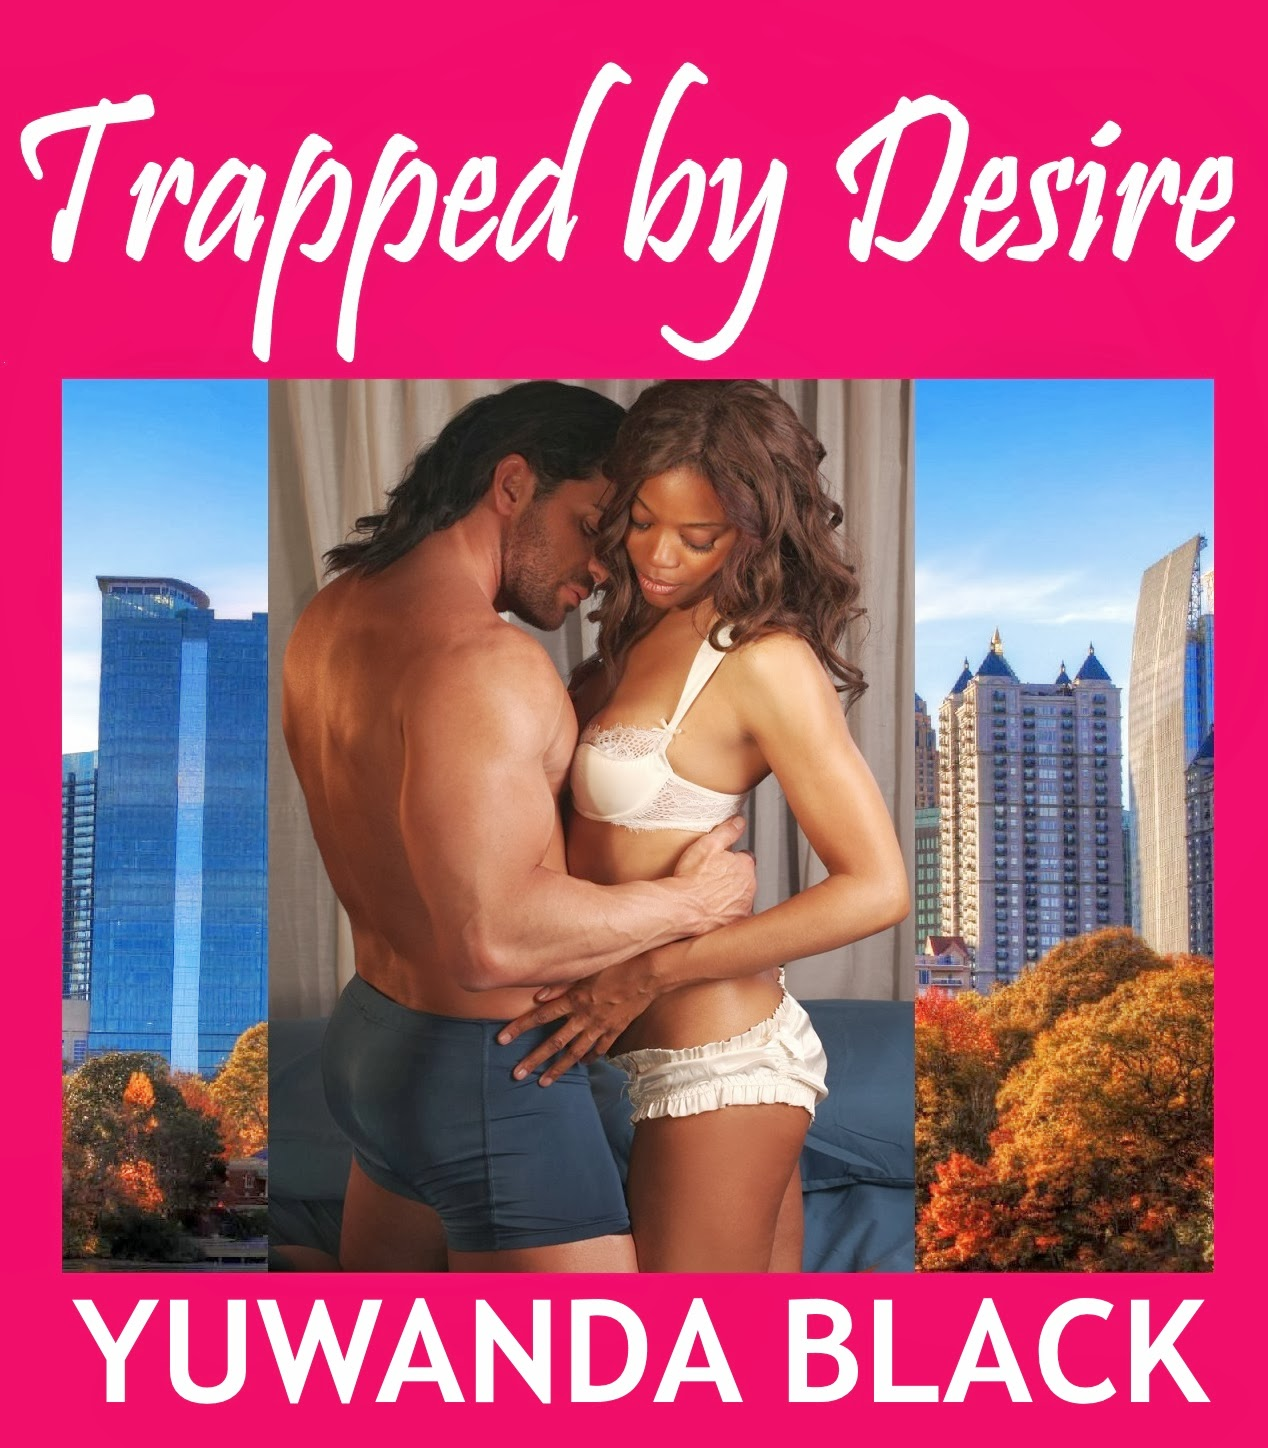 To My Big Sis Yuwanda Black For Her New Romance Book Release Trapped By Desire Hot Find It On Amazon At Www Amazon Com Dp B00iyy0xv0